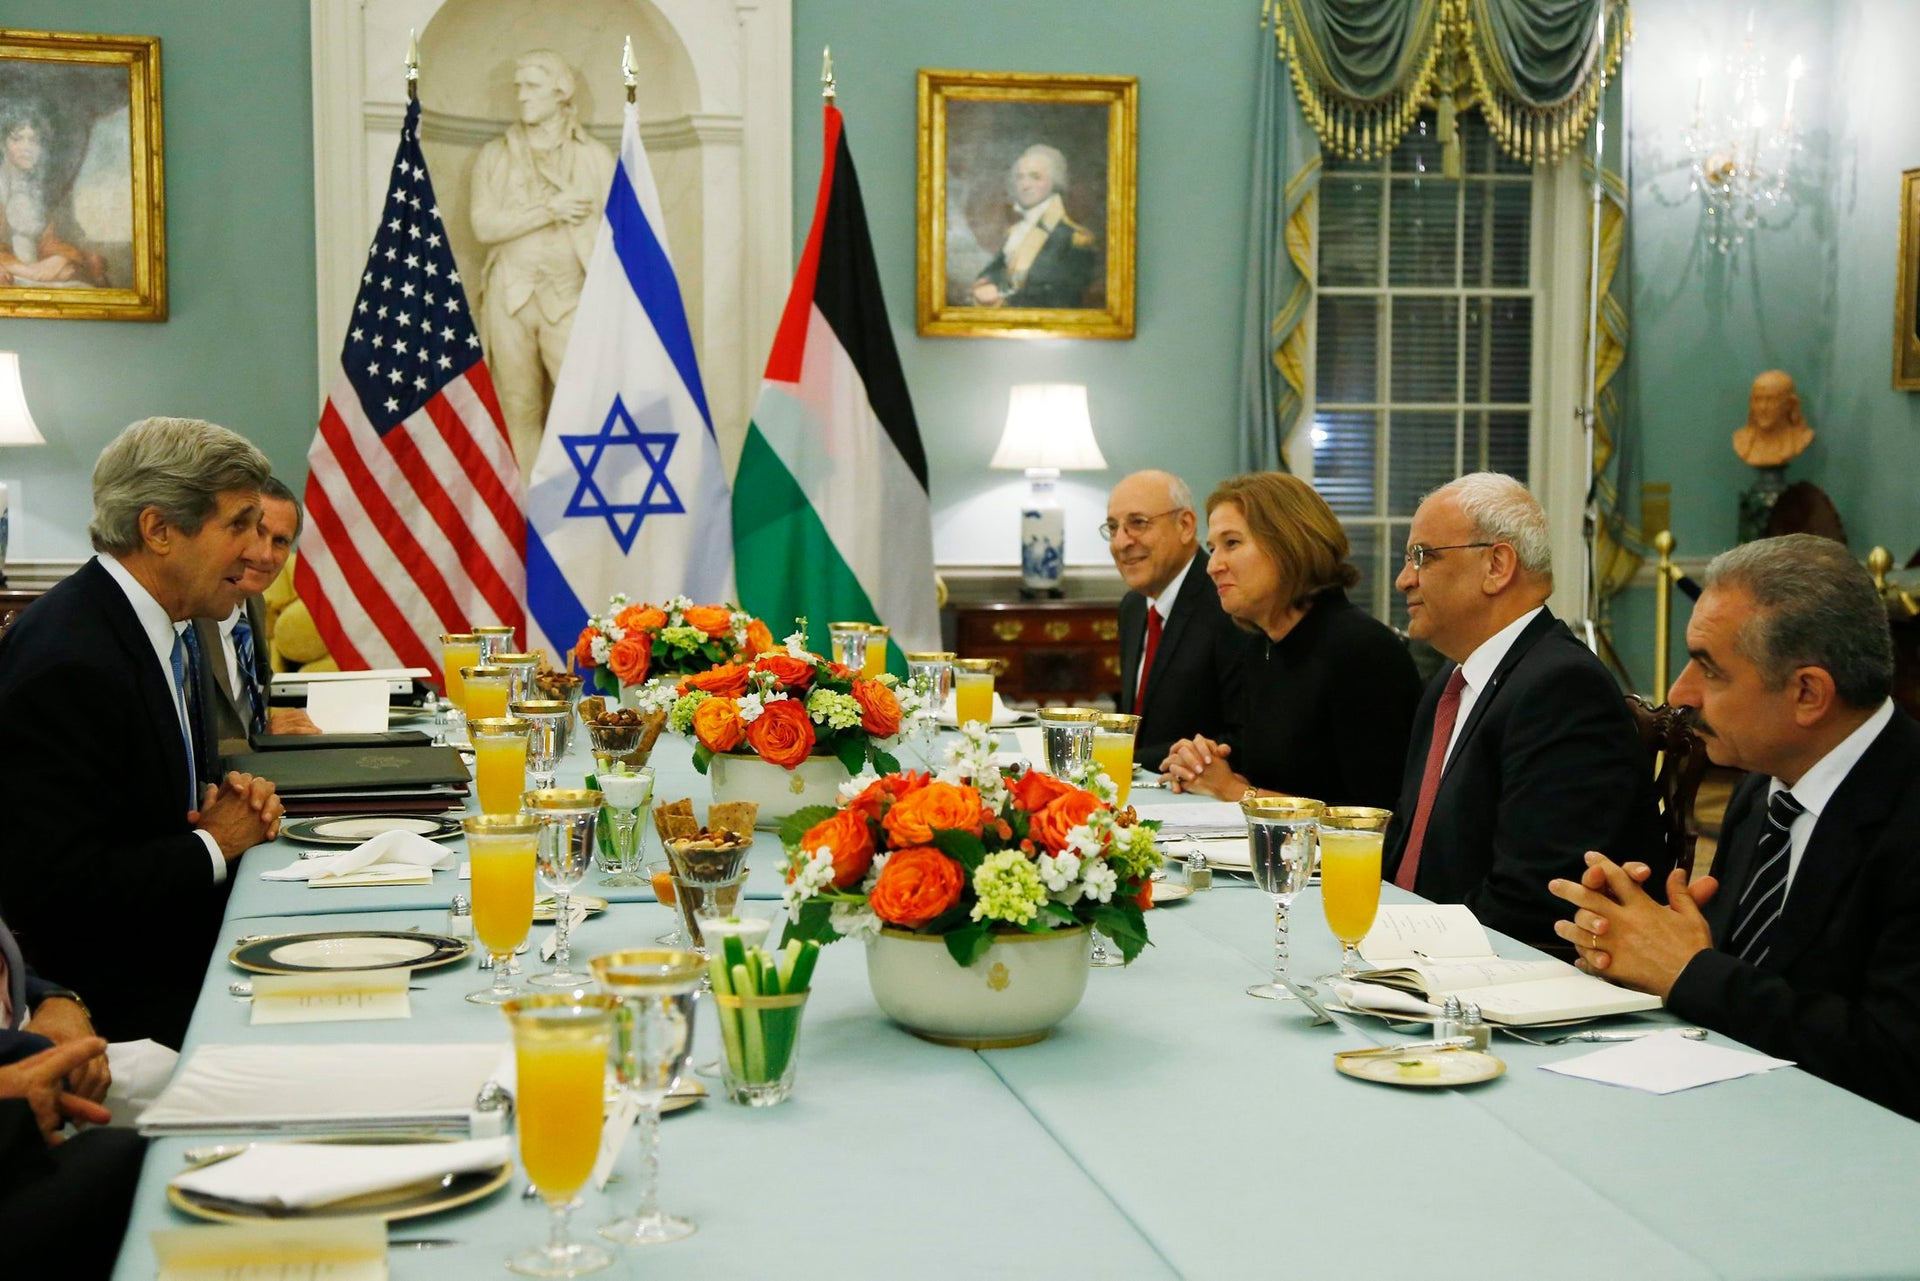 Then-U.S. Secretary of State John Kerry, left, sits across from Israeli and Palestinian negotiators at an Iftar celebration in Washington, July 2013.